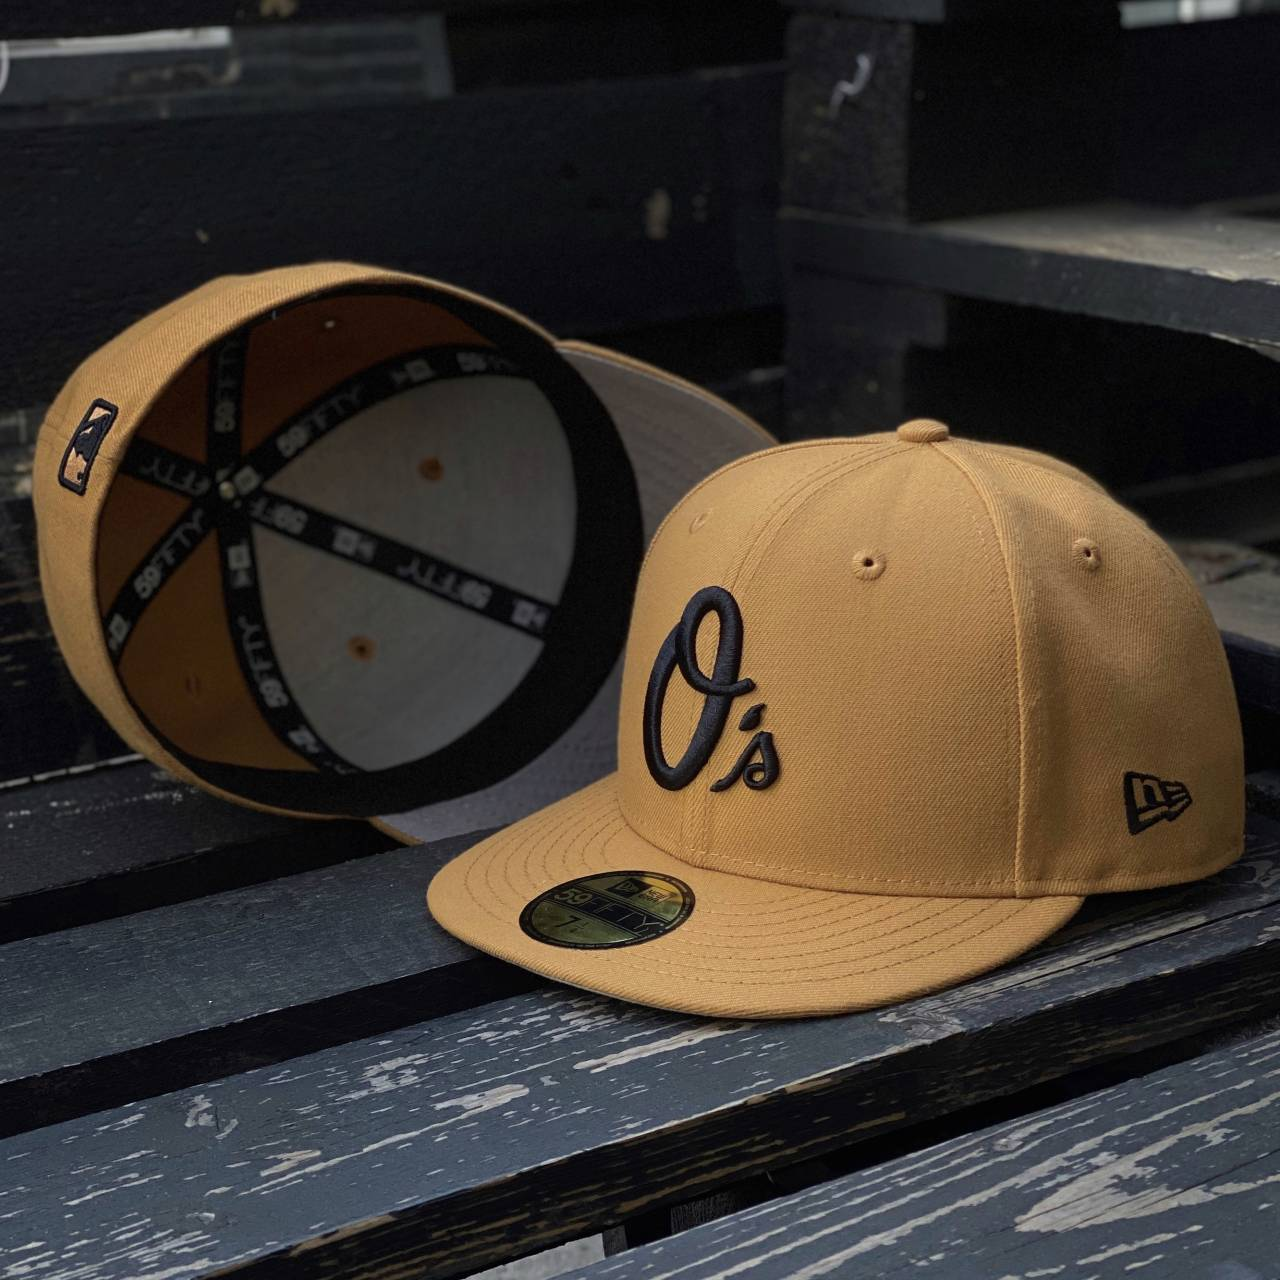 EXCLUSIVE 59FIFTY MLB BALTIMORE ORIOLES PEANUT/GREY UNDERBRIM